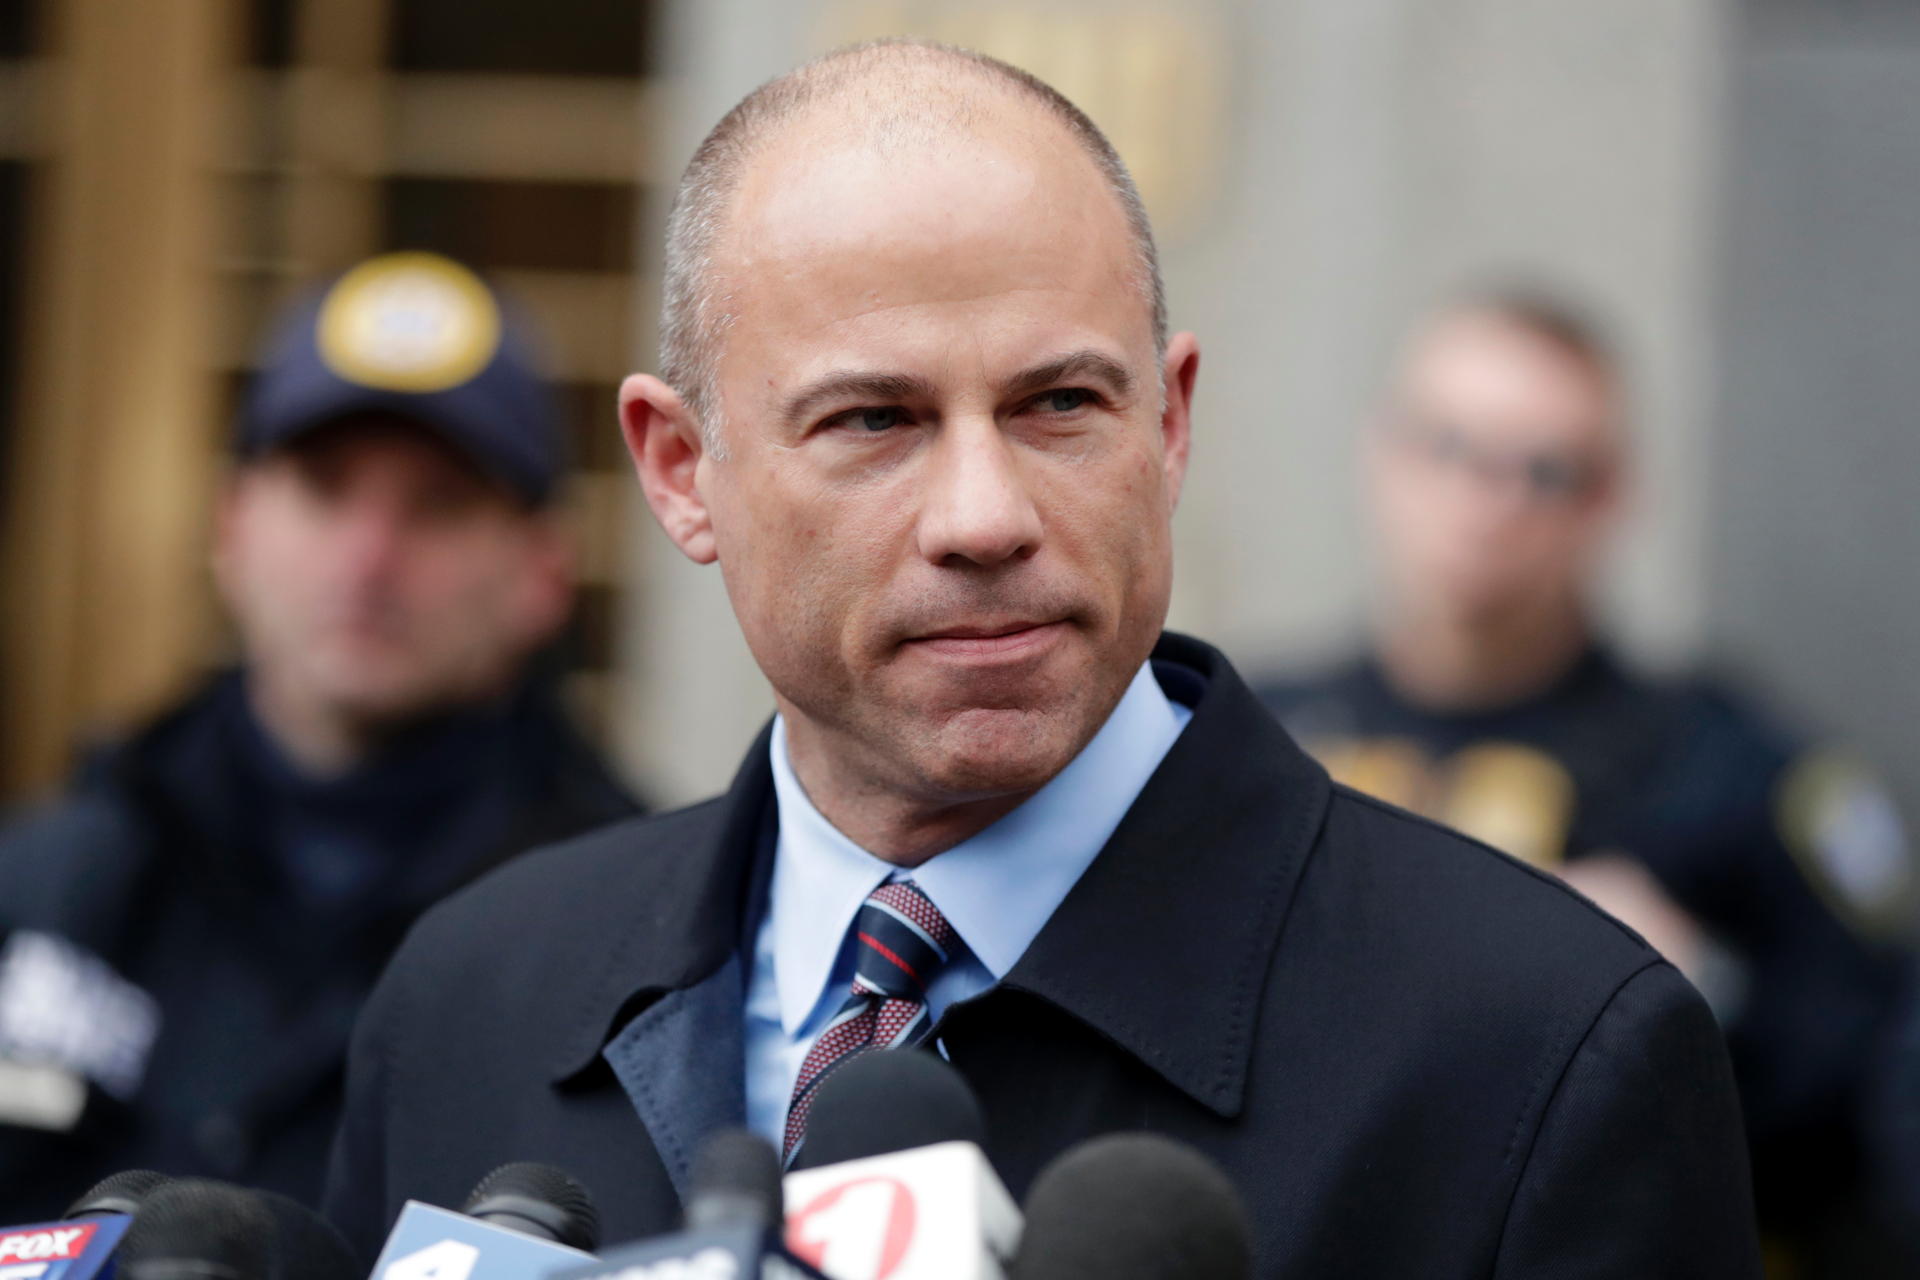 Westlake Legal Group ContentBroker_contentid-c01ee37219fe4dd38ee32a7c392a6381 Michael Avenatti accused of embezzling almost $2M from girlfriend of NBA player Washington Examiner fnc/us fnc article 2d84ba49-b3e0-5b56-982e-9f0b6fc399d0